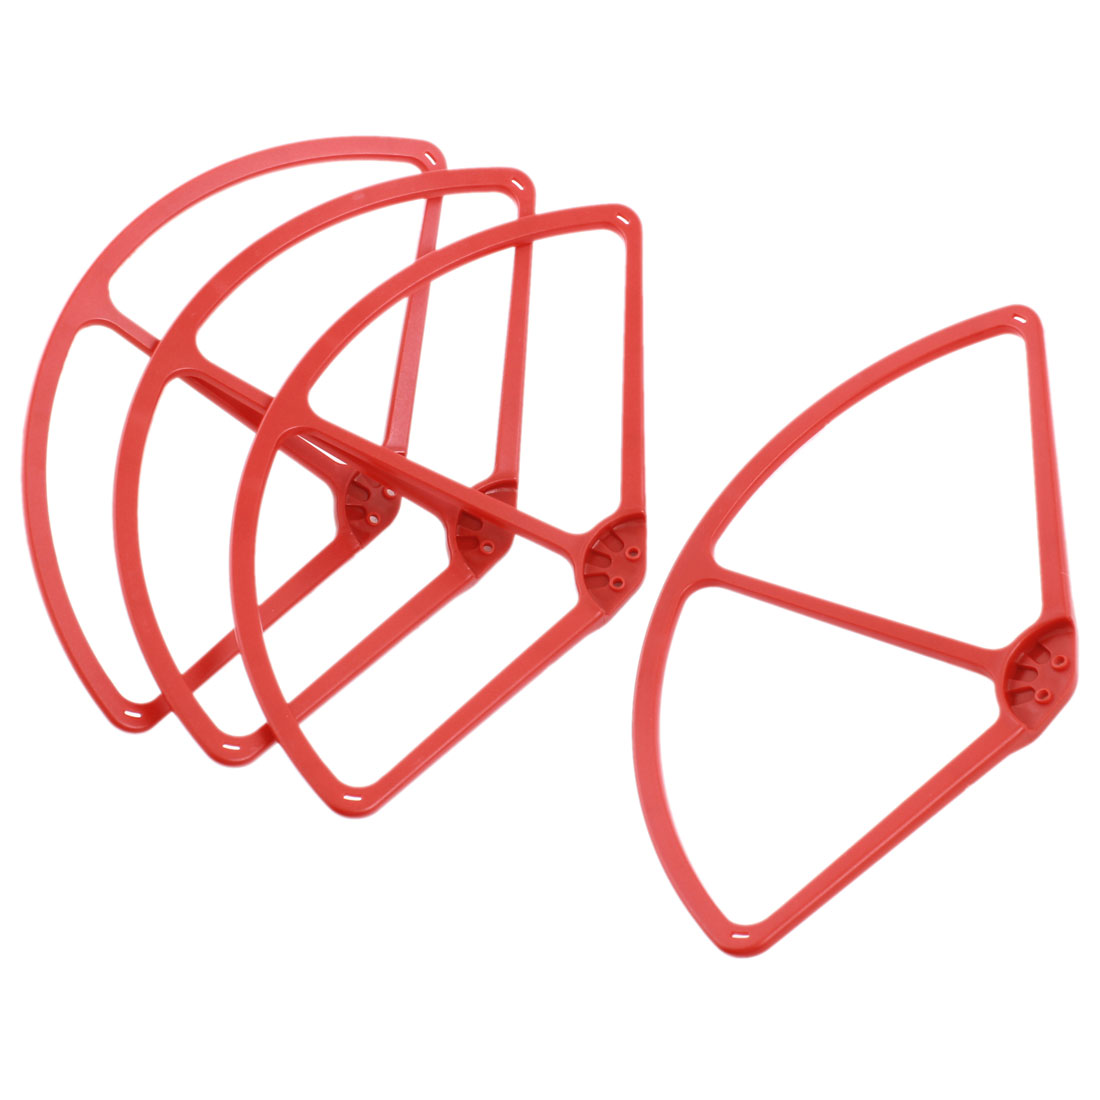 "4 Pcs Red Plastic Propeller Prop Protective Guard Bumper 9"" for DJI Phantom 2 Vision Quadcopter"